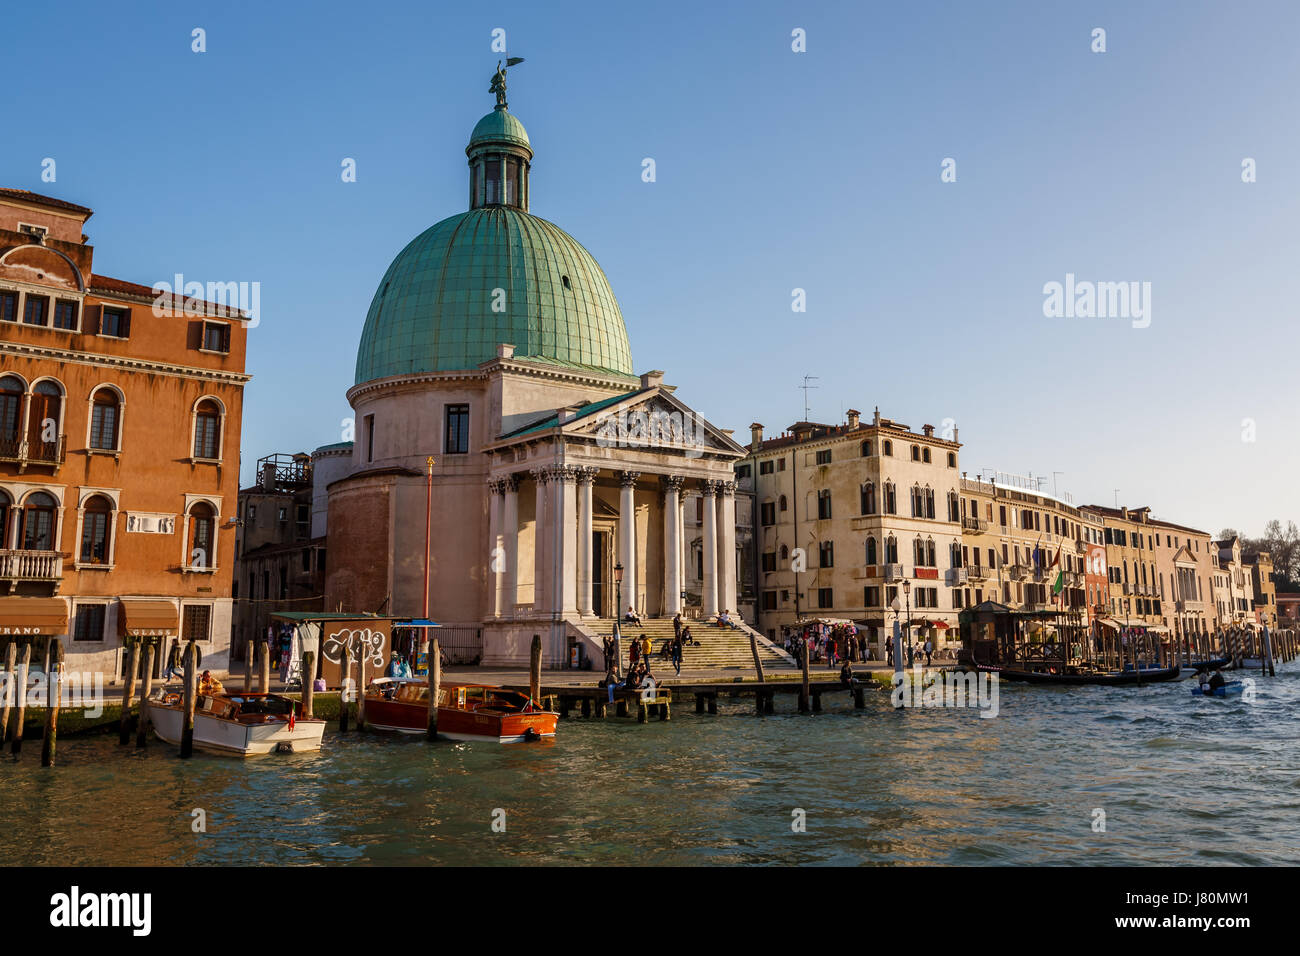 VENICE, ITALY - MARCH 7: A View of the Chiesa de San Simeone Piccolo and the Grand Canal on March 7, 2014 in Venice, - Stock Image